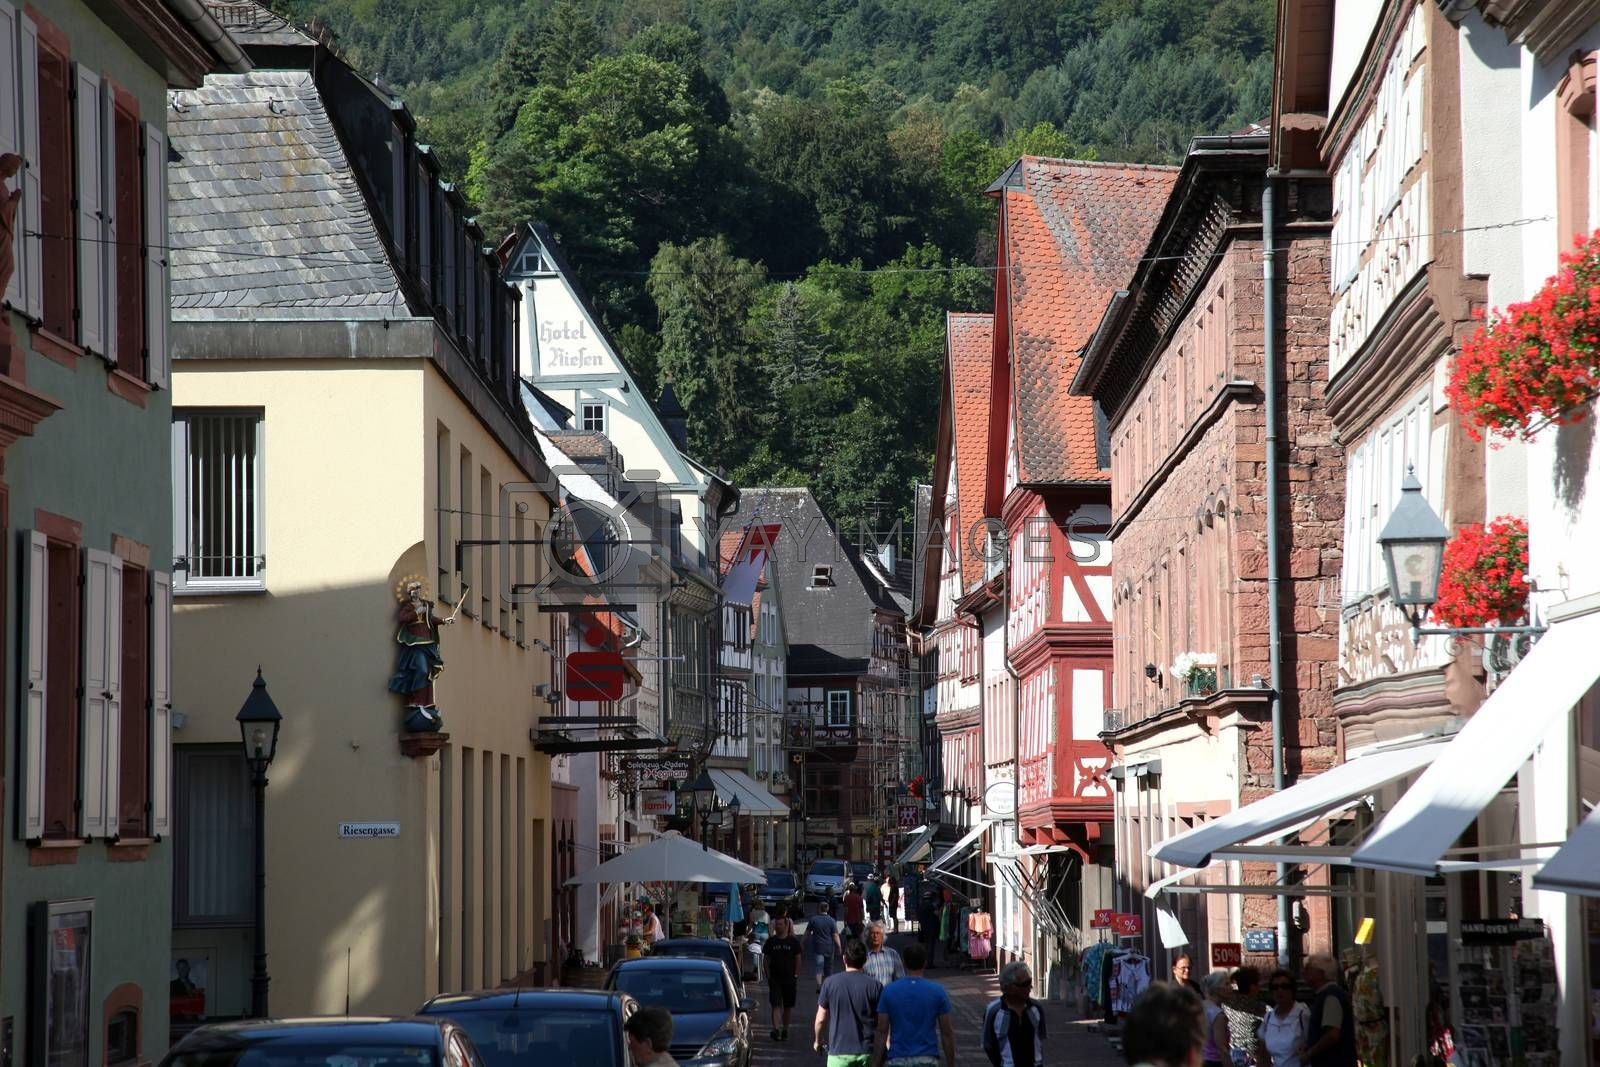 Half-timbered old house in Miltenberg, Germany on July 20, 2013.